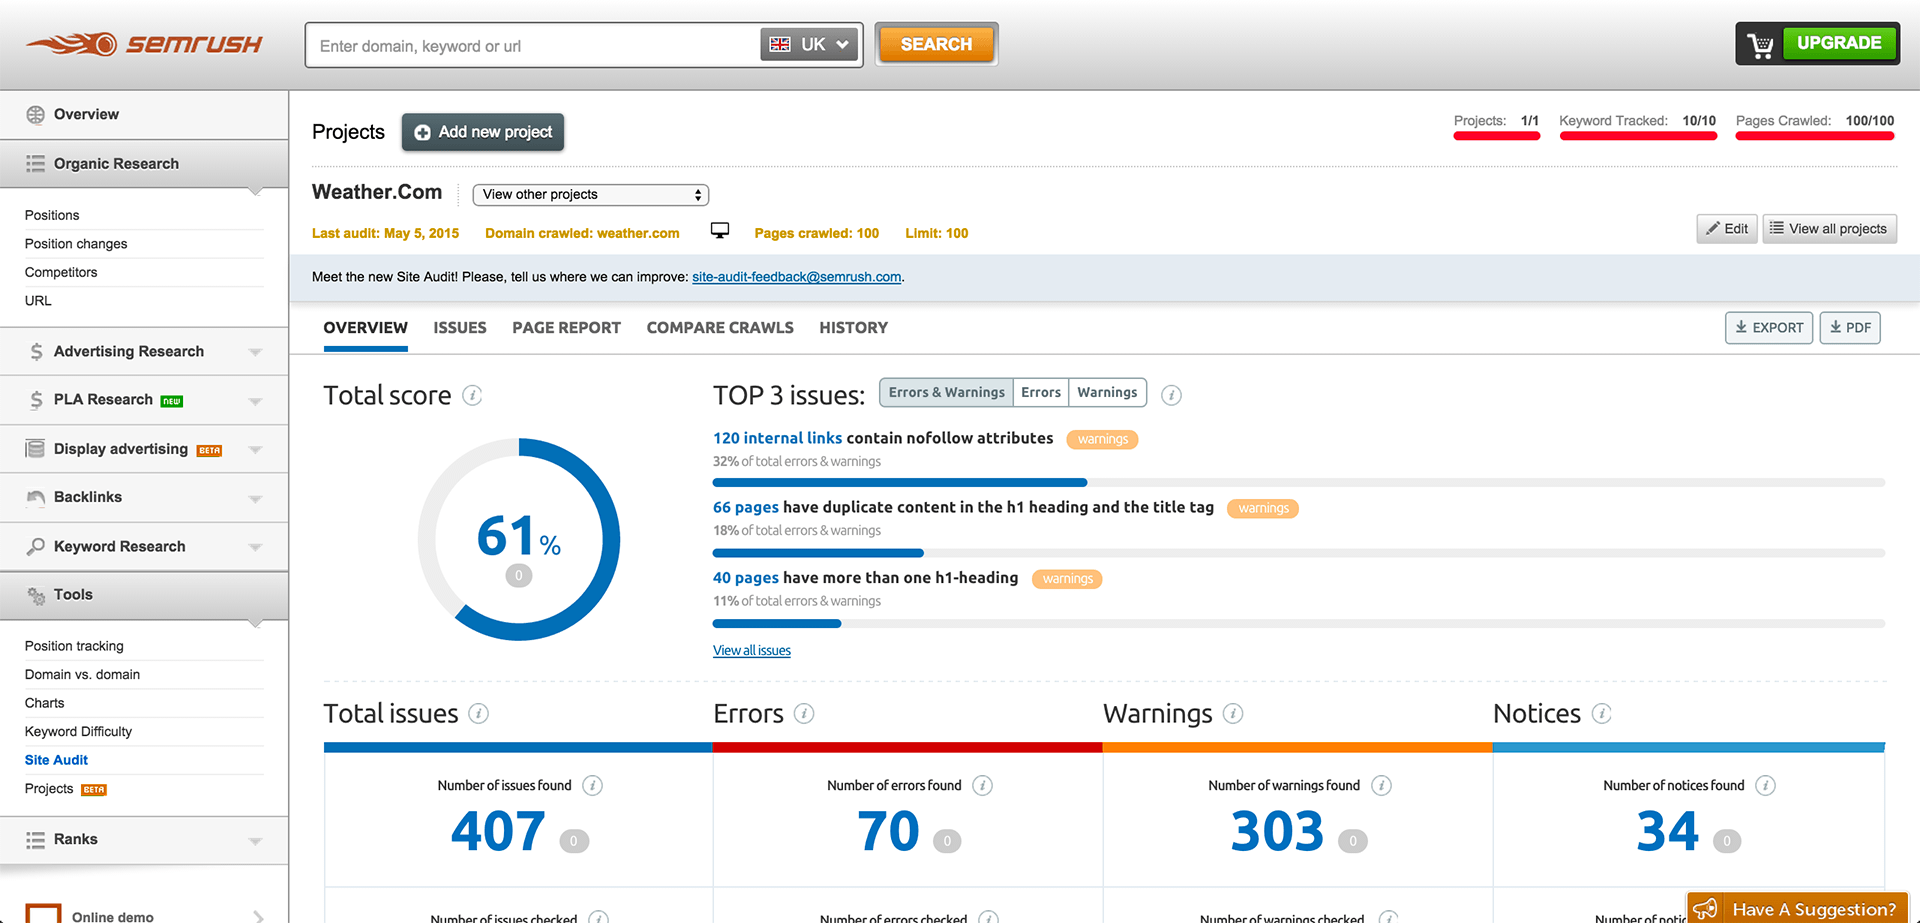 SEMrush Projects